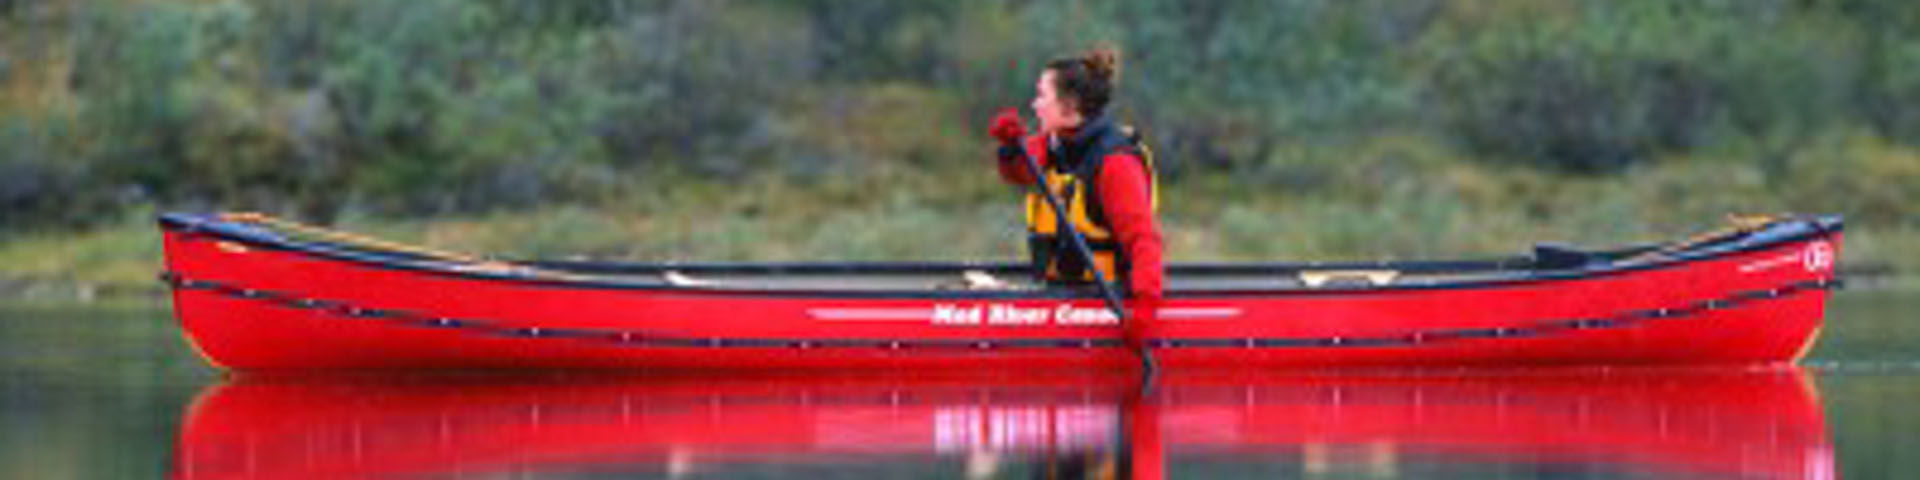 Teslin River - 10 Days by Up North Adventures - Image 361